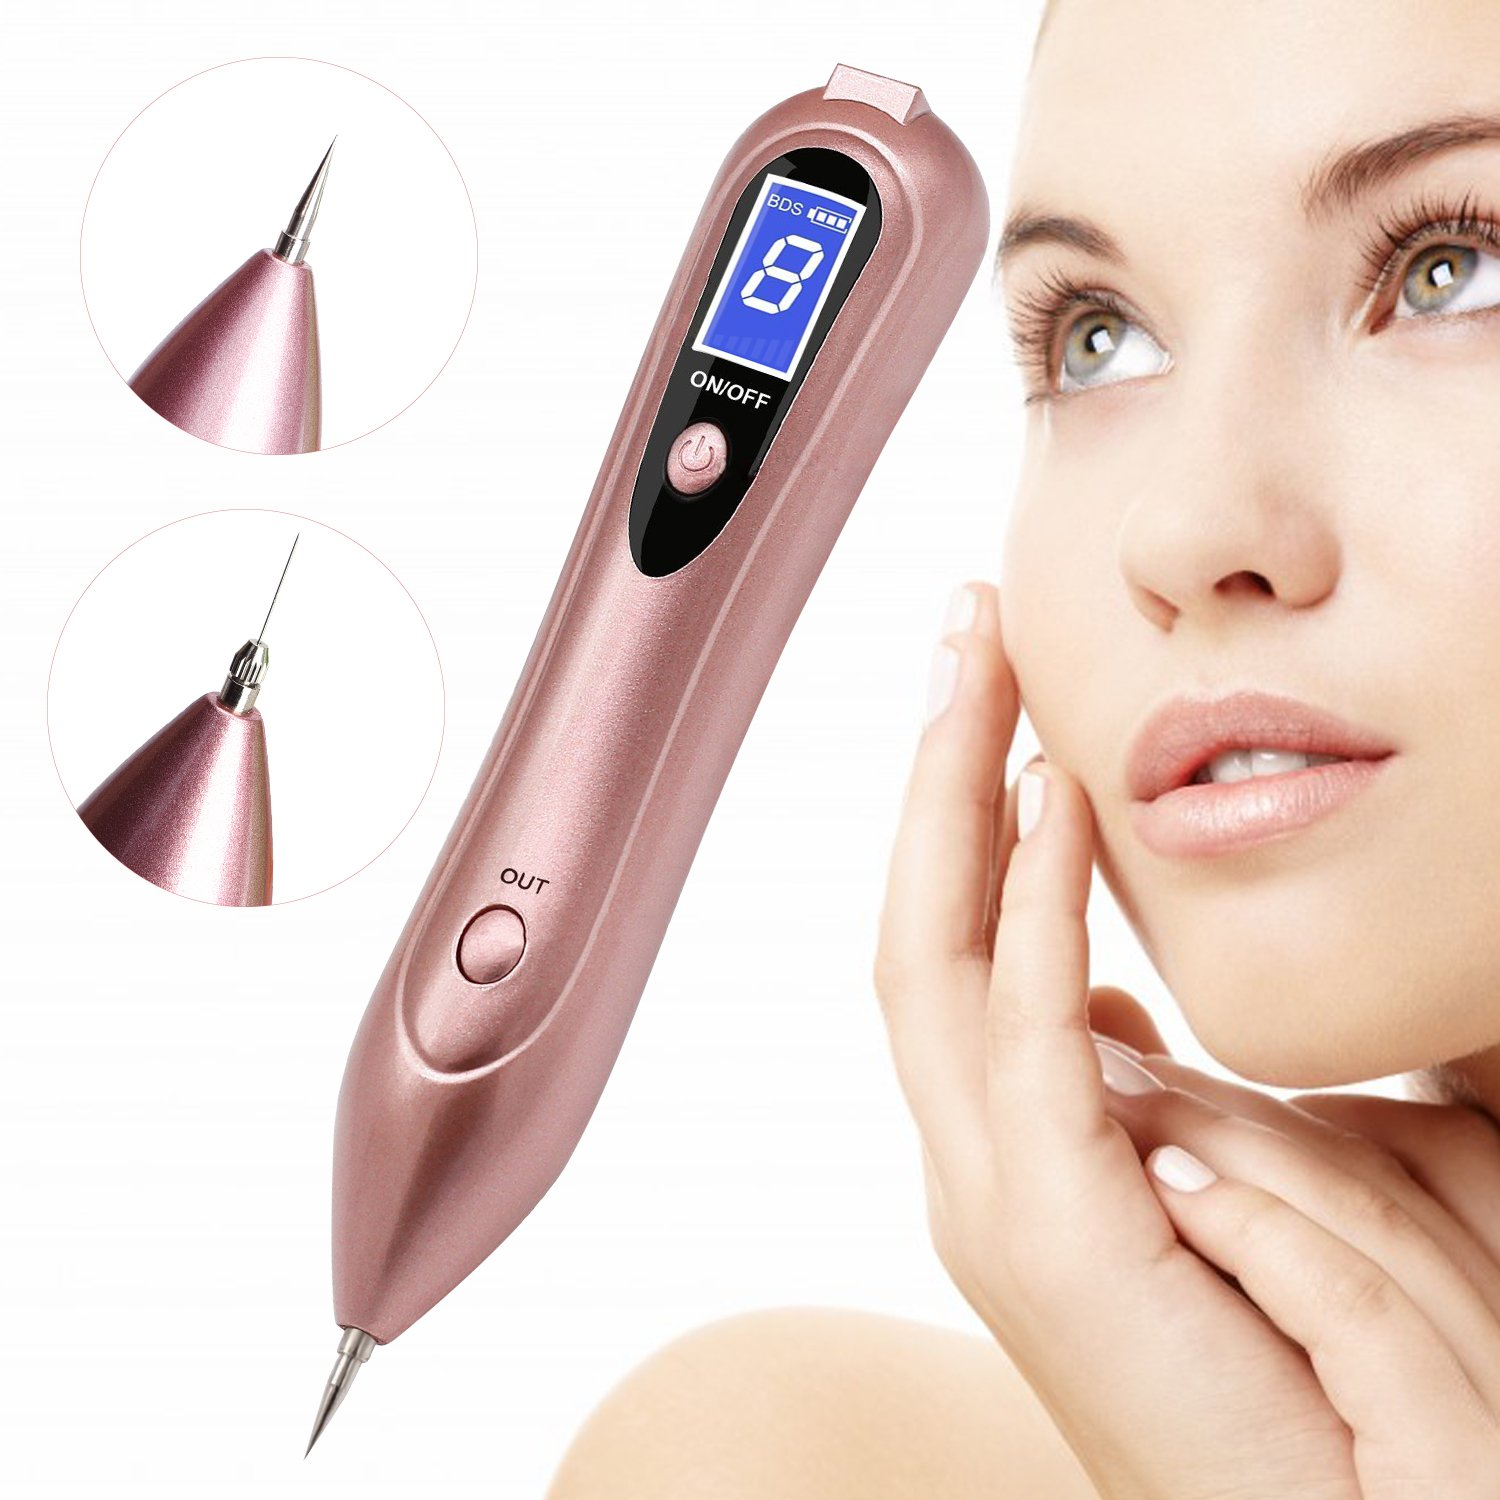 Websun Skin Tags Removal Usb Charging Tattoo Removal Pen 8 Strength Levels Professional Spot Removal Pen Buy Online In Gibraltar Websun Products In Gibraltar See Prices Reviews And Free